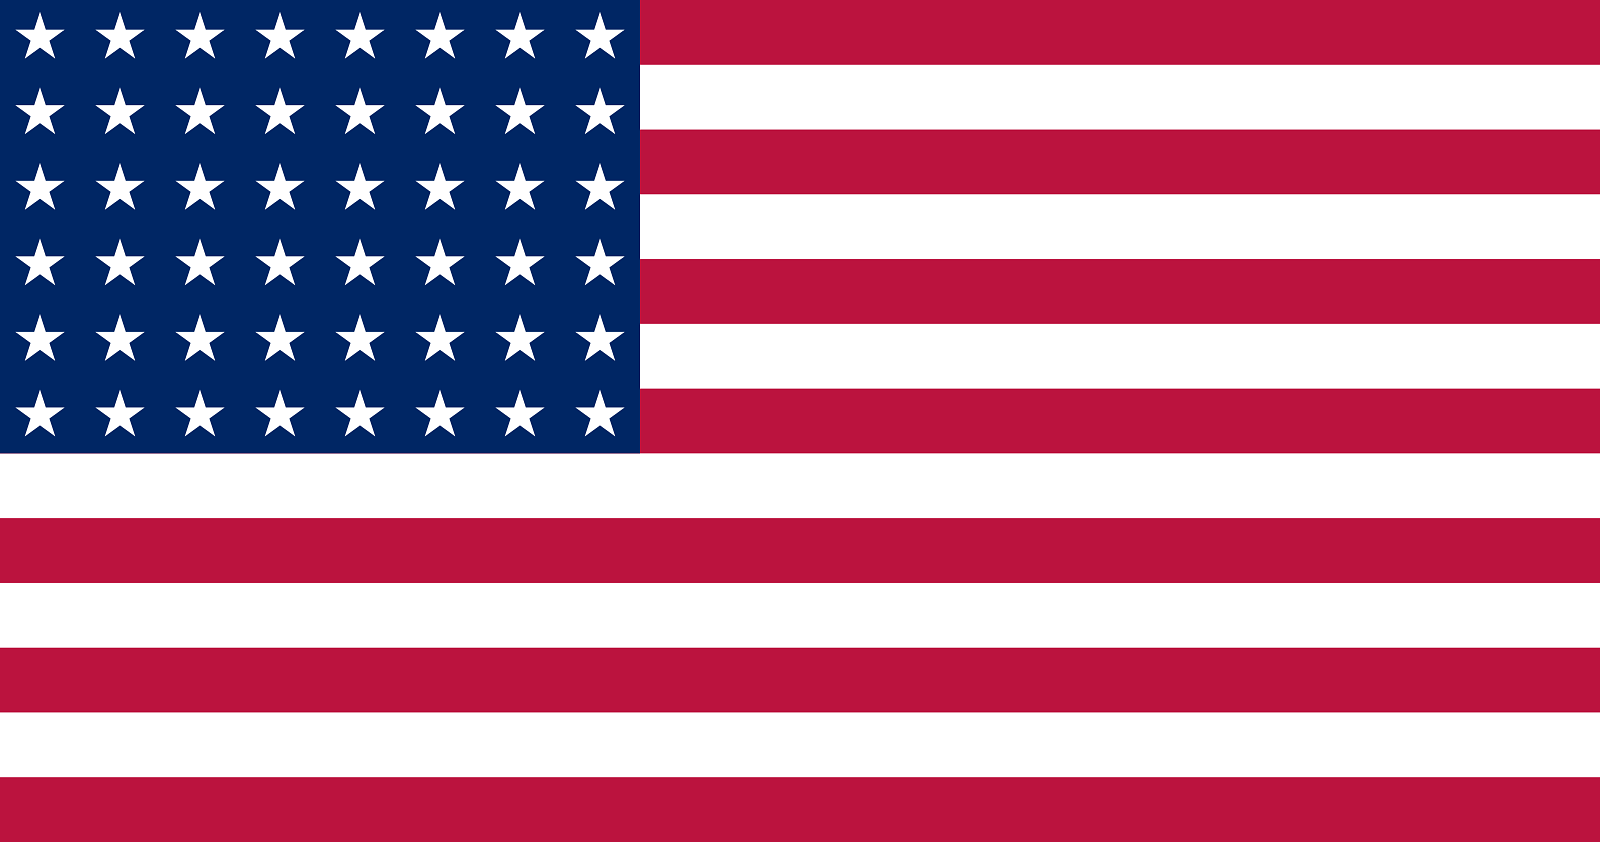 파일:1600px-Flag_of_the_United_States_(1912-1959).svg.png